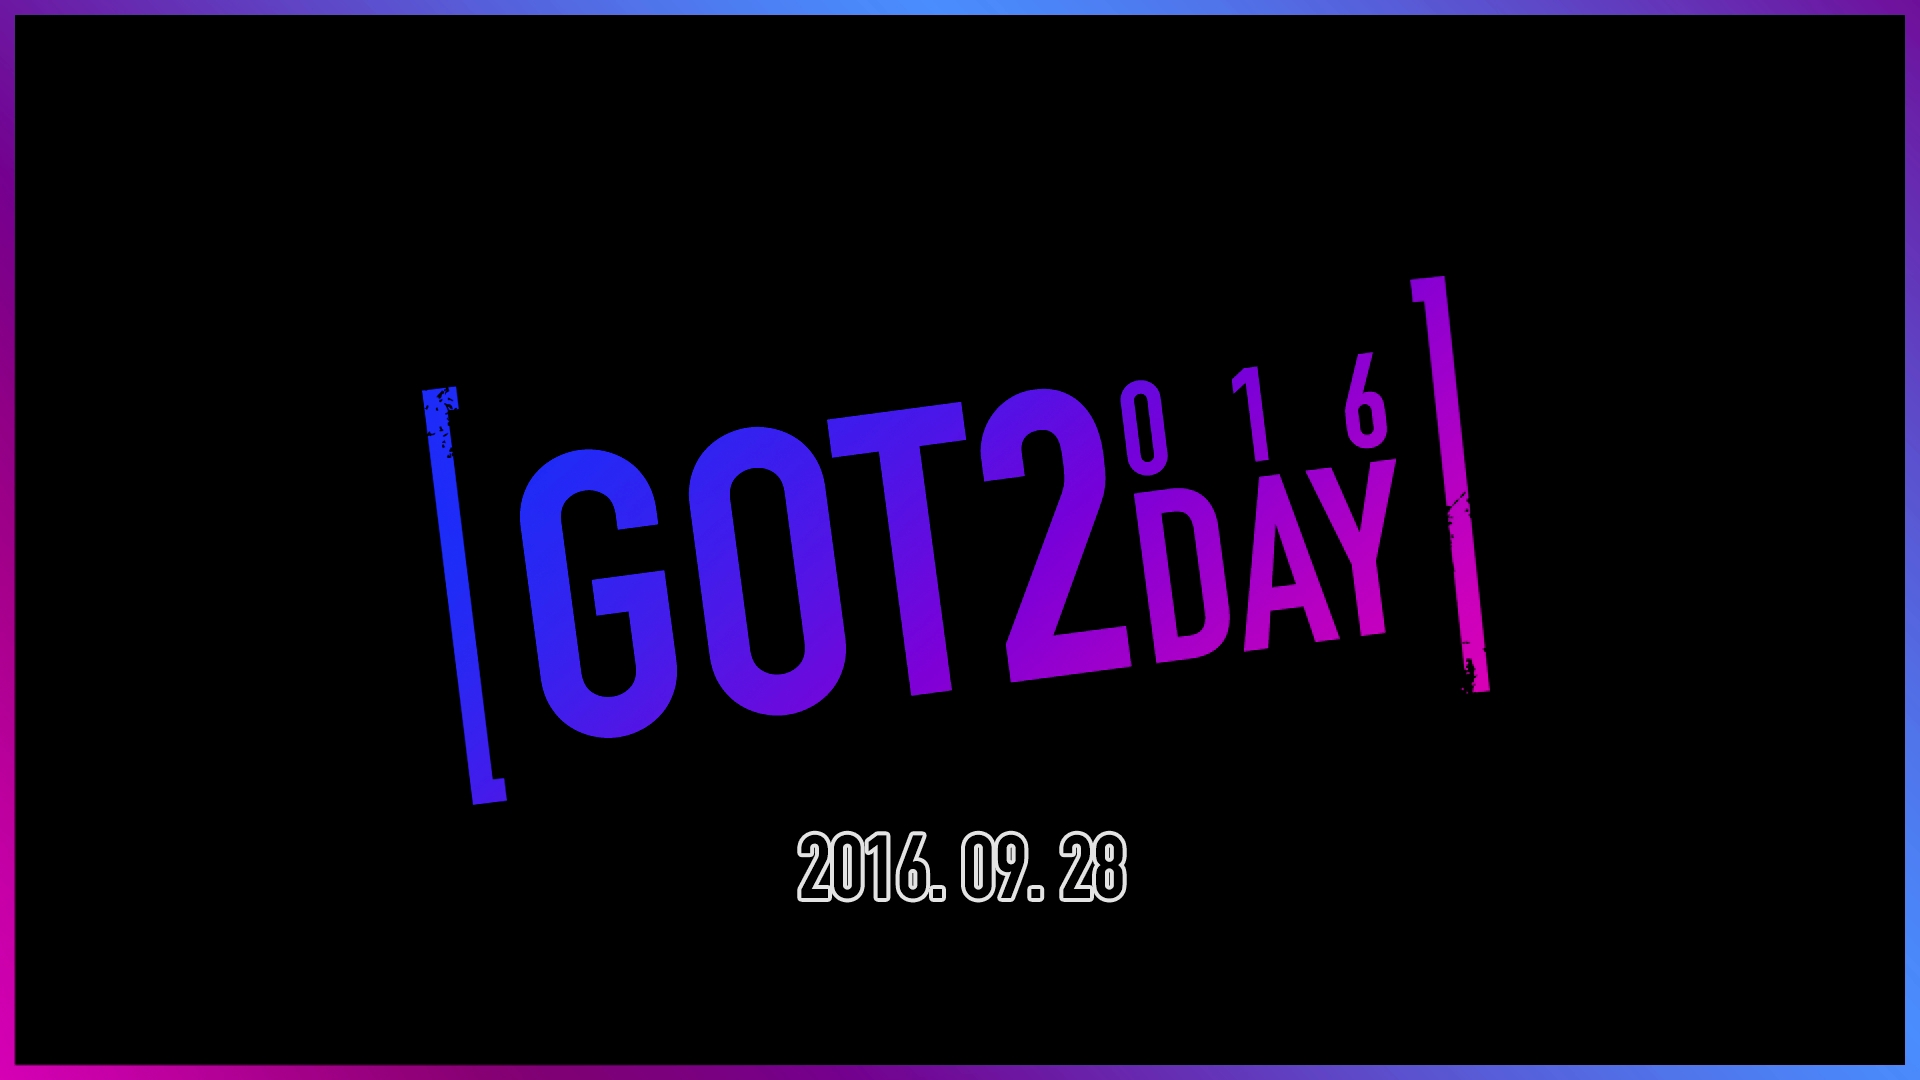 [GOT2DAY 2016] COMING SOON